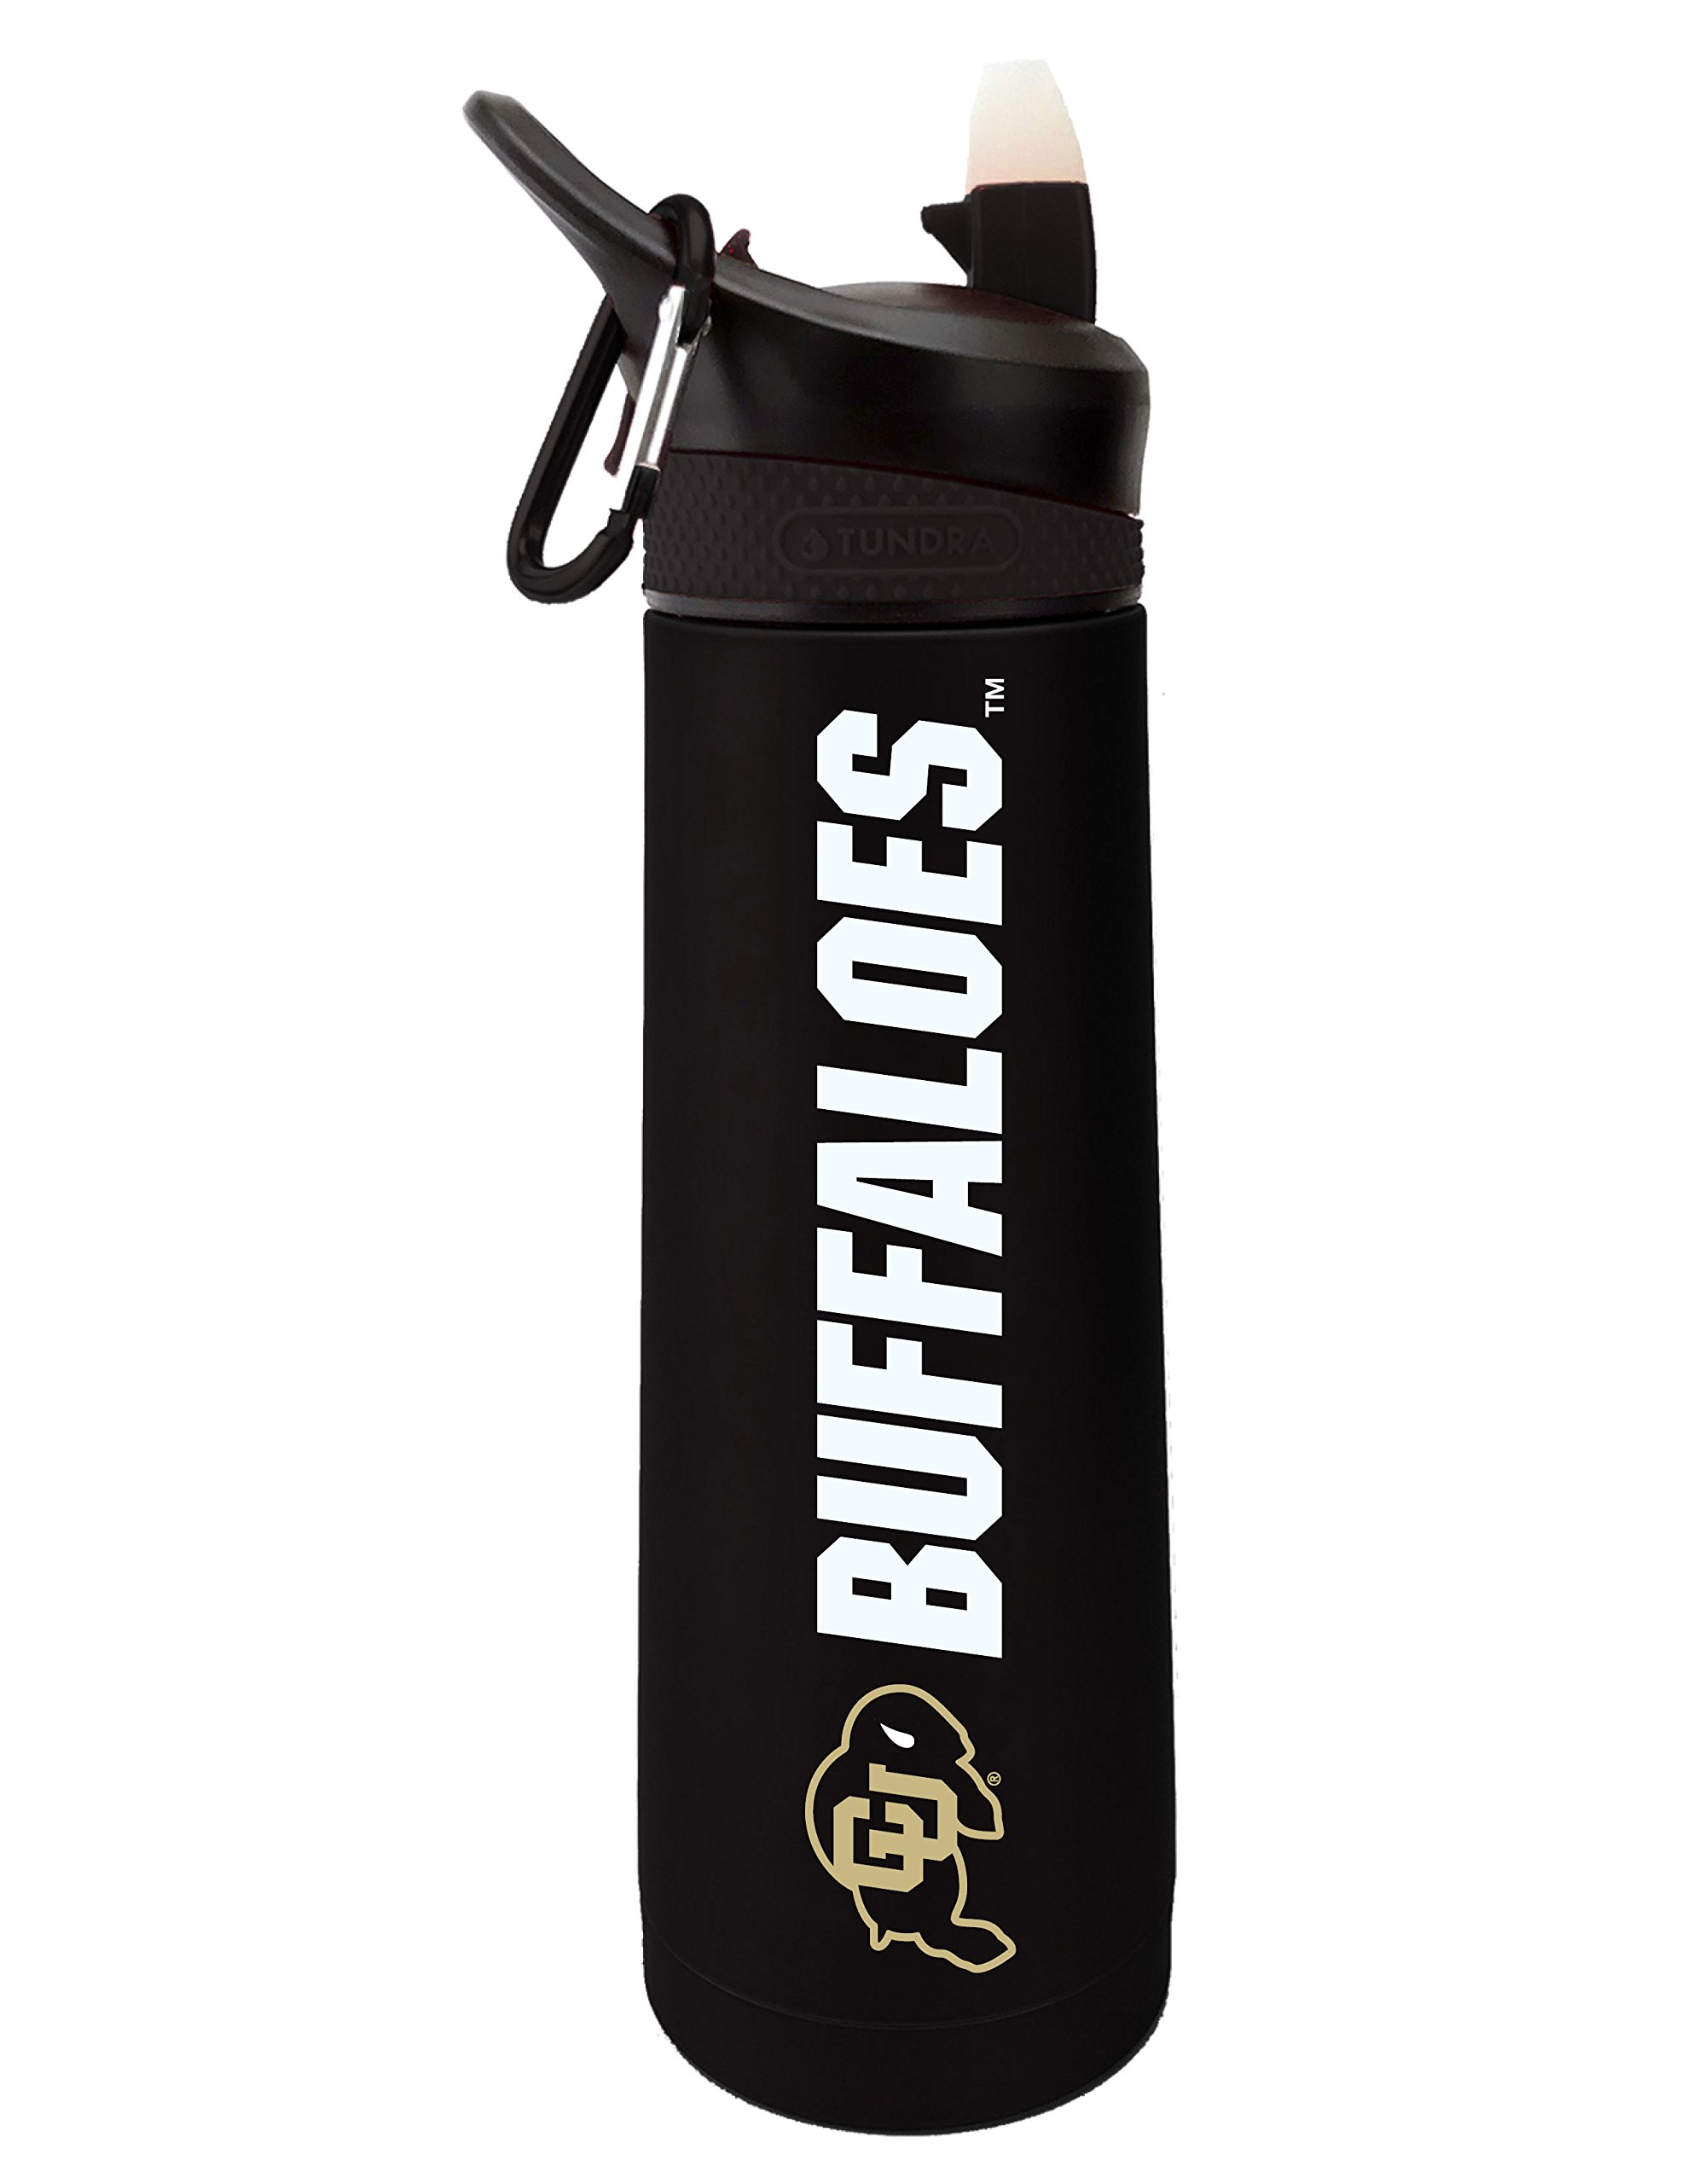 Fanatic Group University of Colorado Dual Walled Stainless Steel Sports Bottle, Design 2 - Black